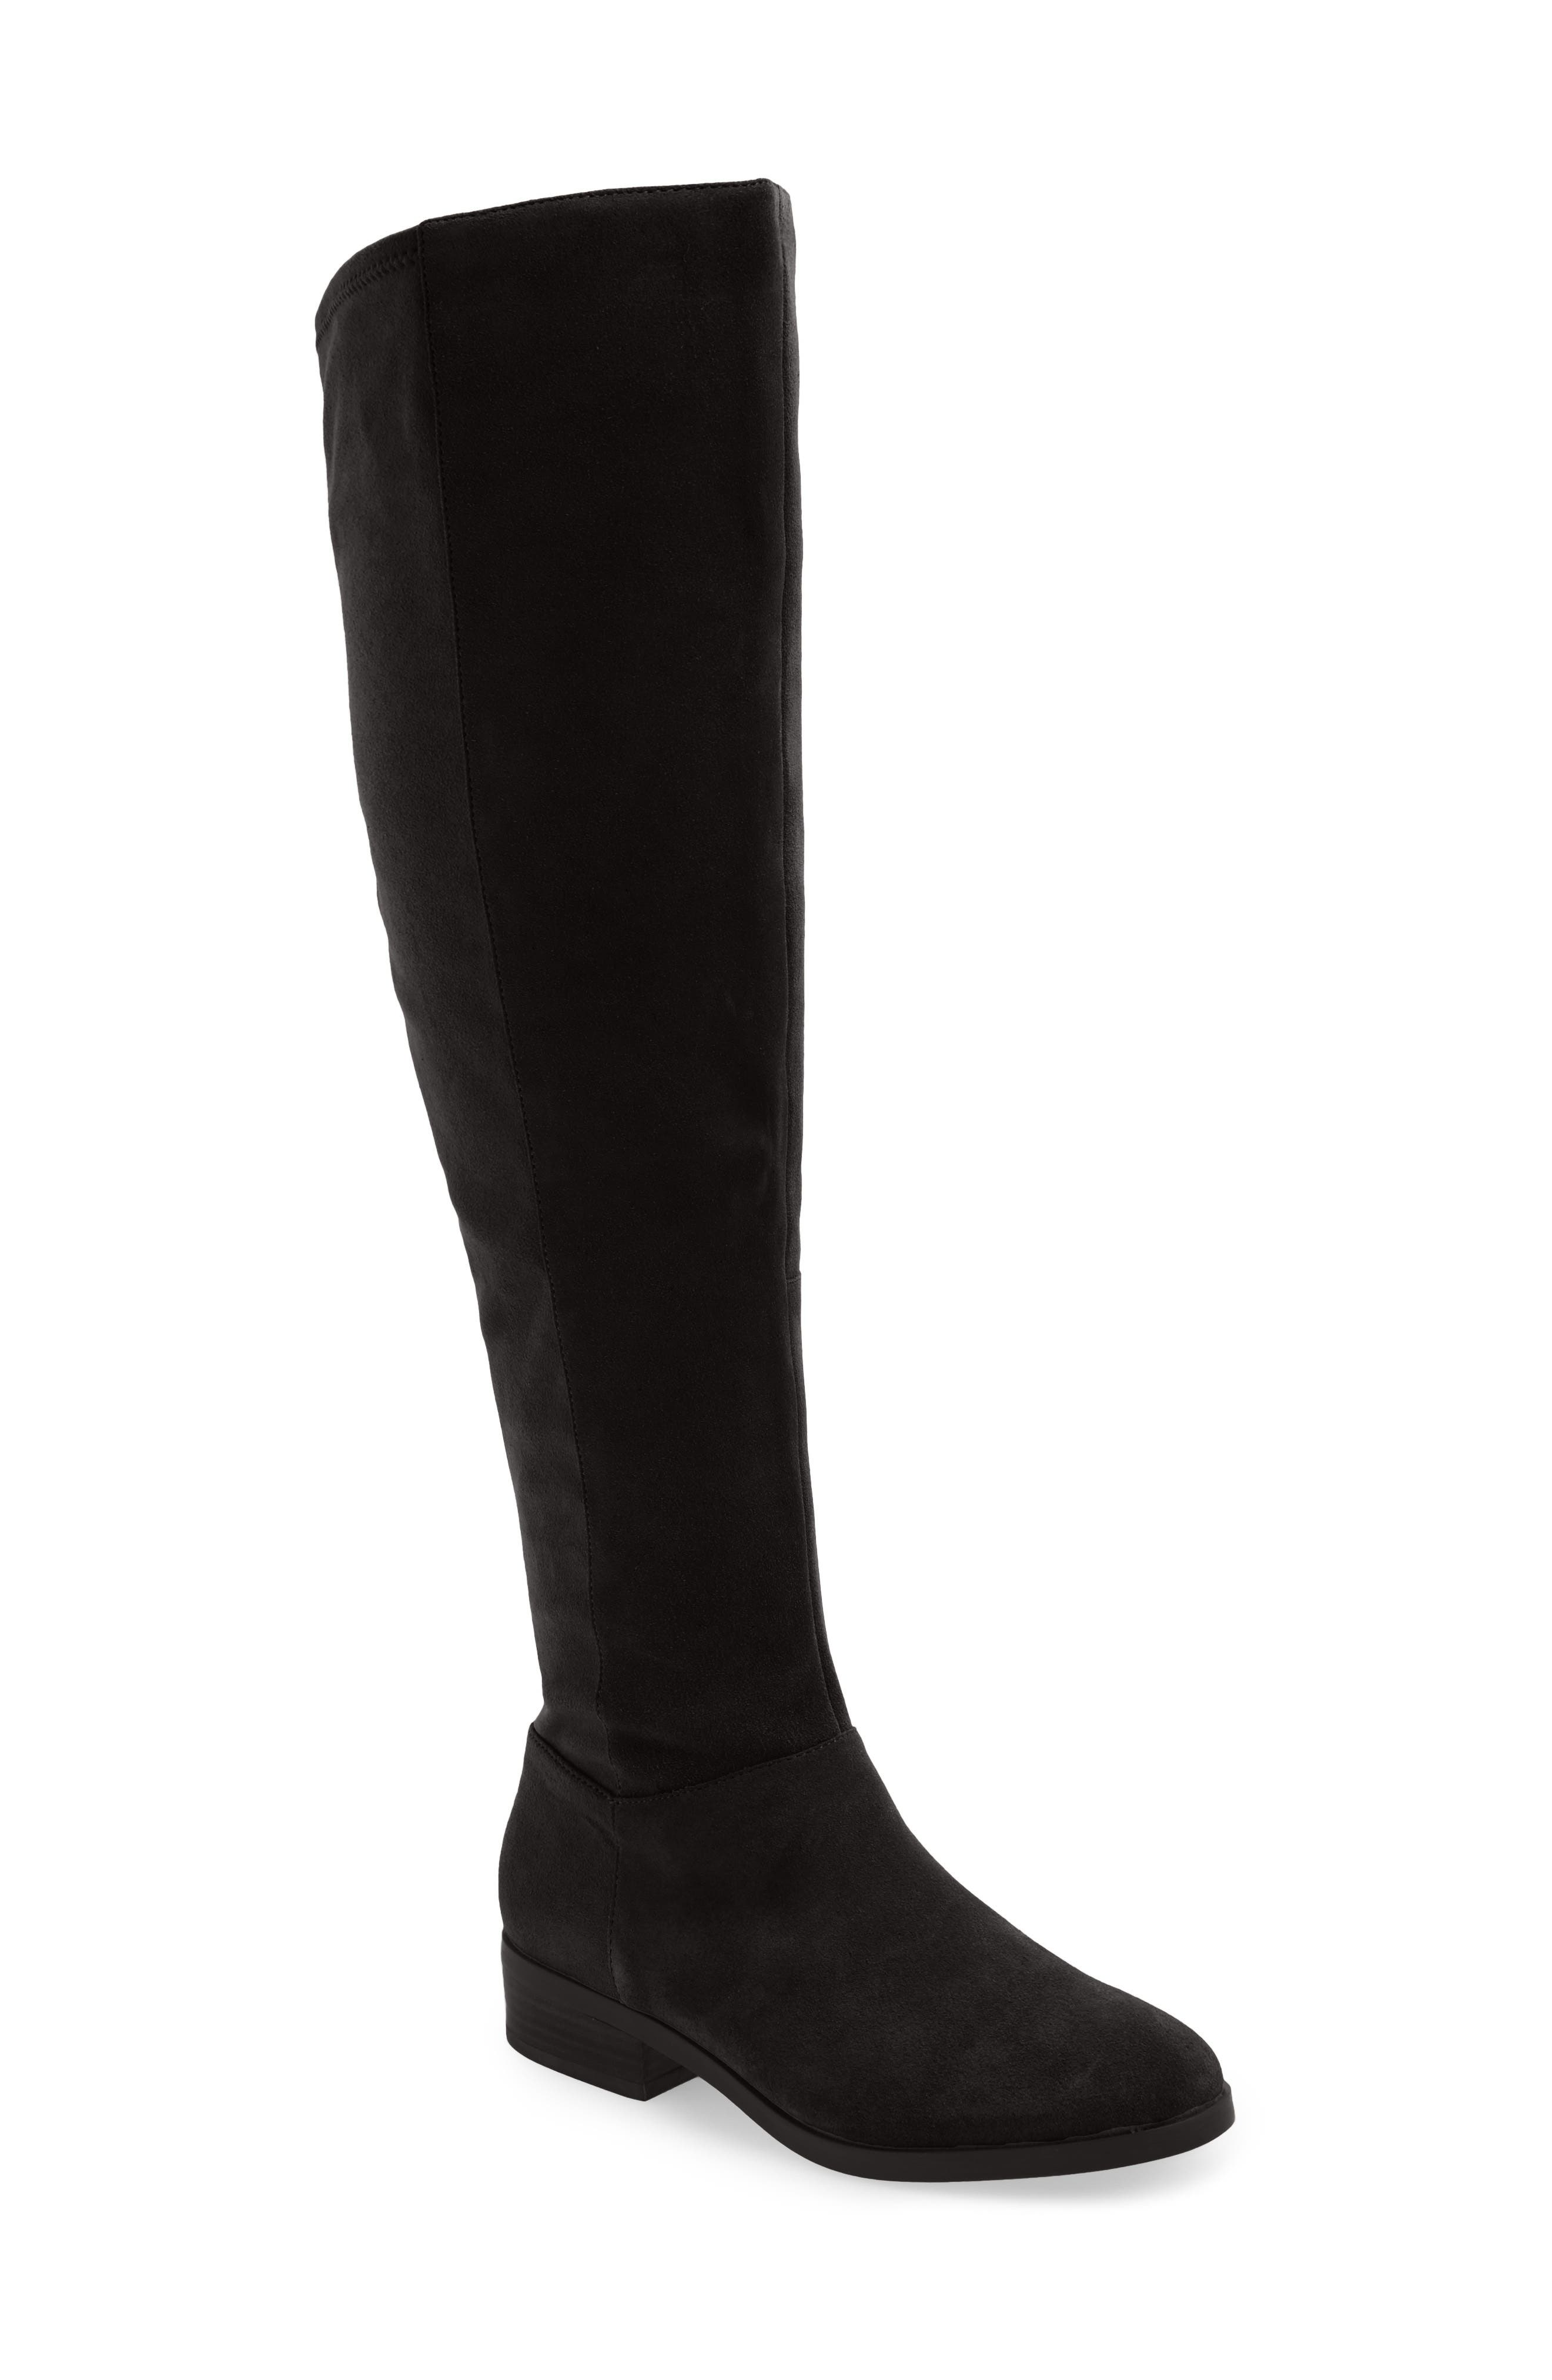 SOLE SOCIETY Kinney Over the Knee Boot, Main, color, 003